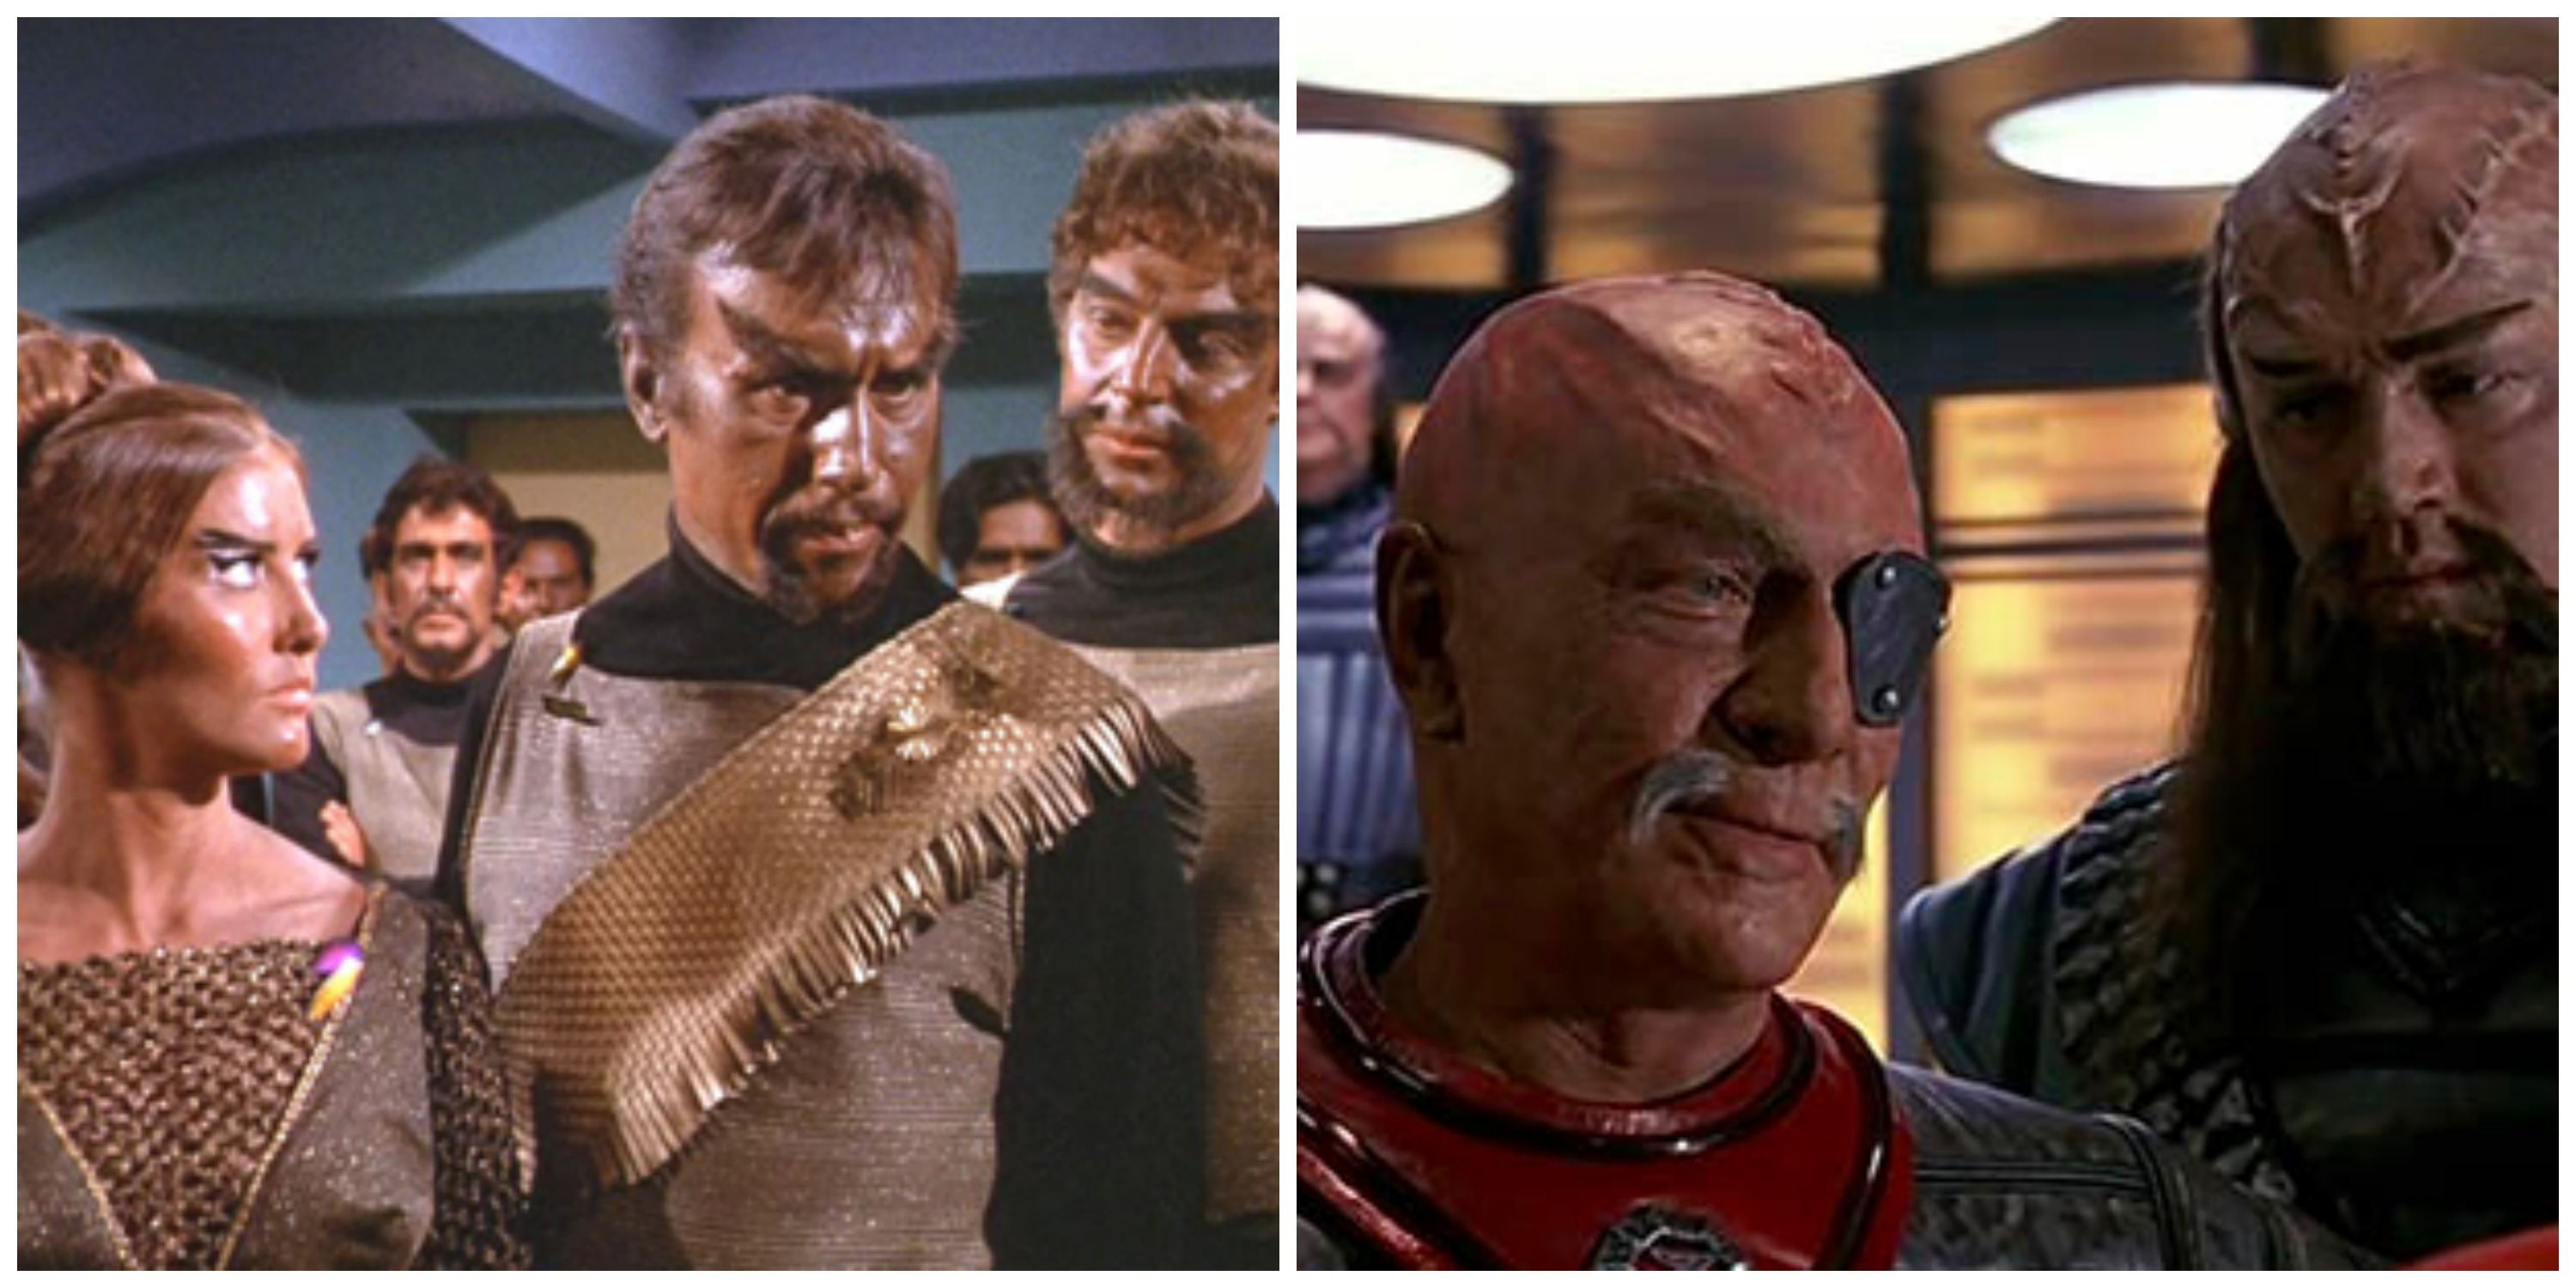 LEFT: Classic Klingons. RIGHT: Klingons in 'The Undiscovered Country'.